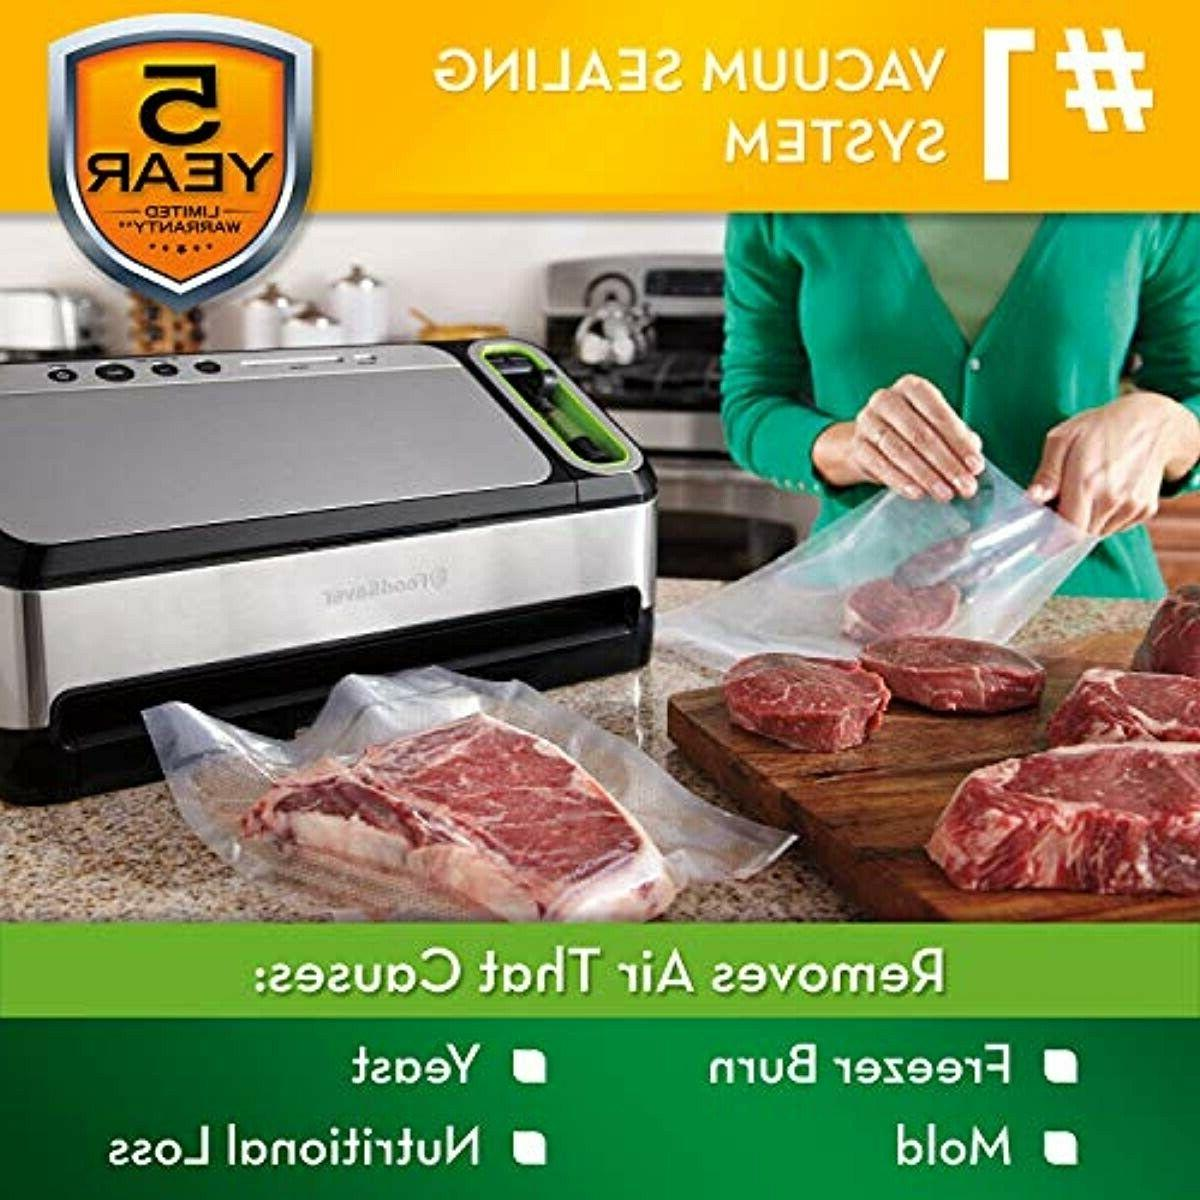 FoodSaver V4840 2-in-1 Vacuum Sealer Automatic Bag Detection